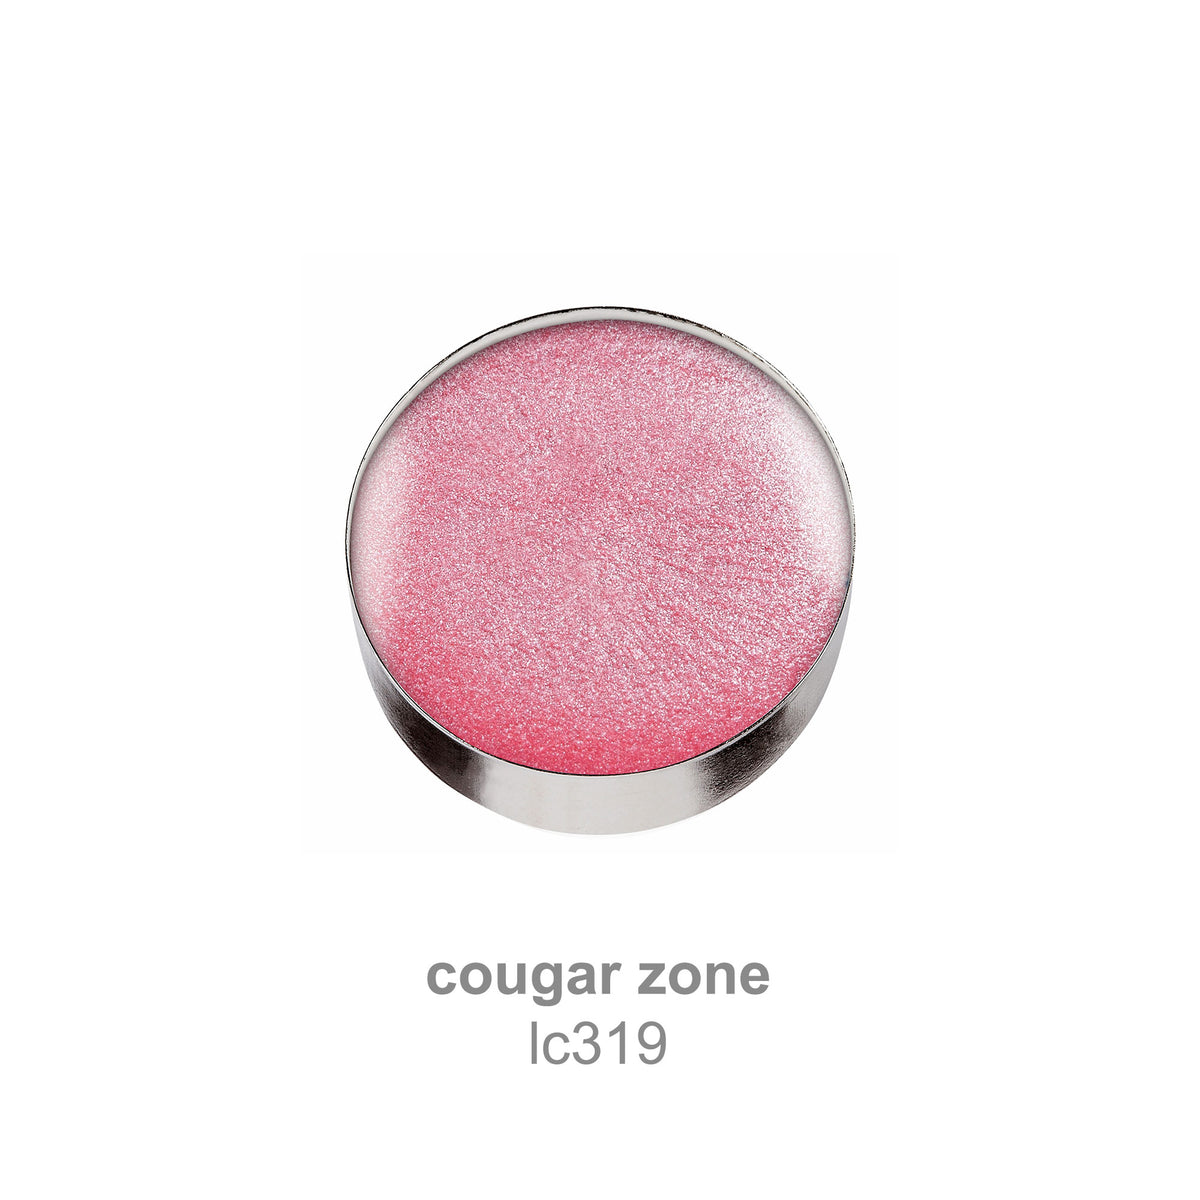 cougar zone (lc319)